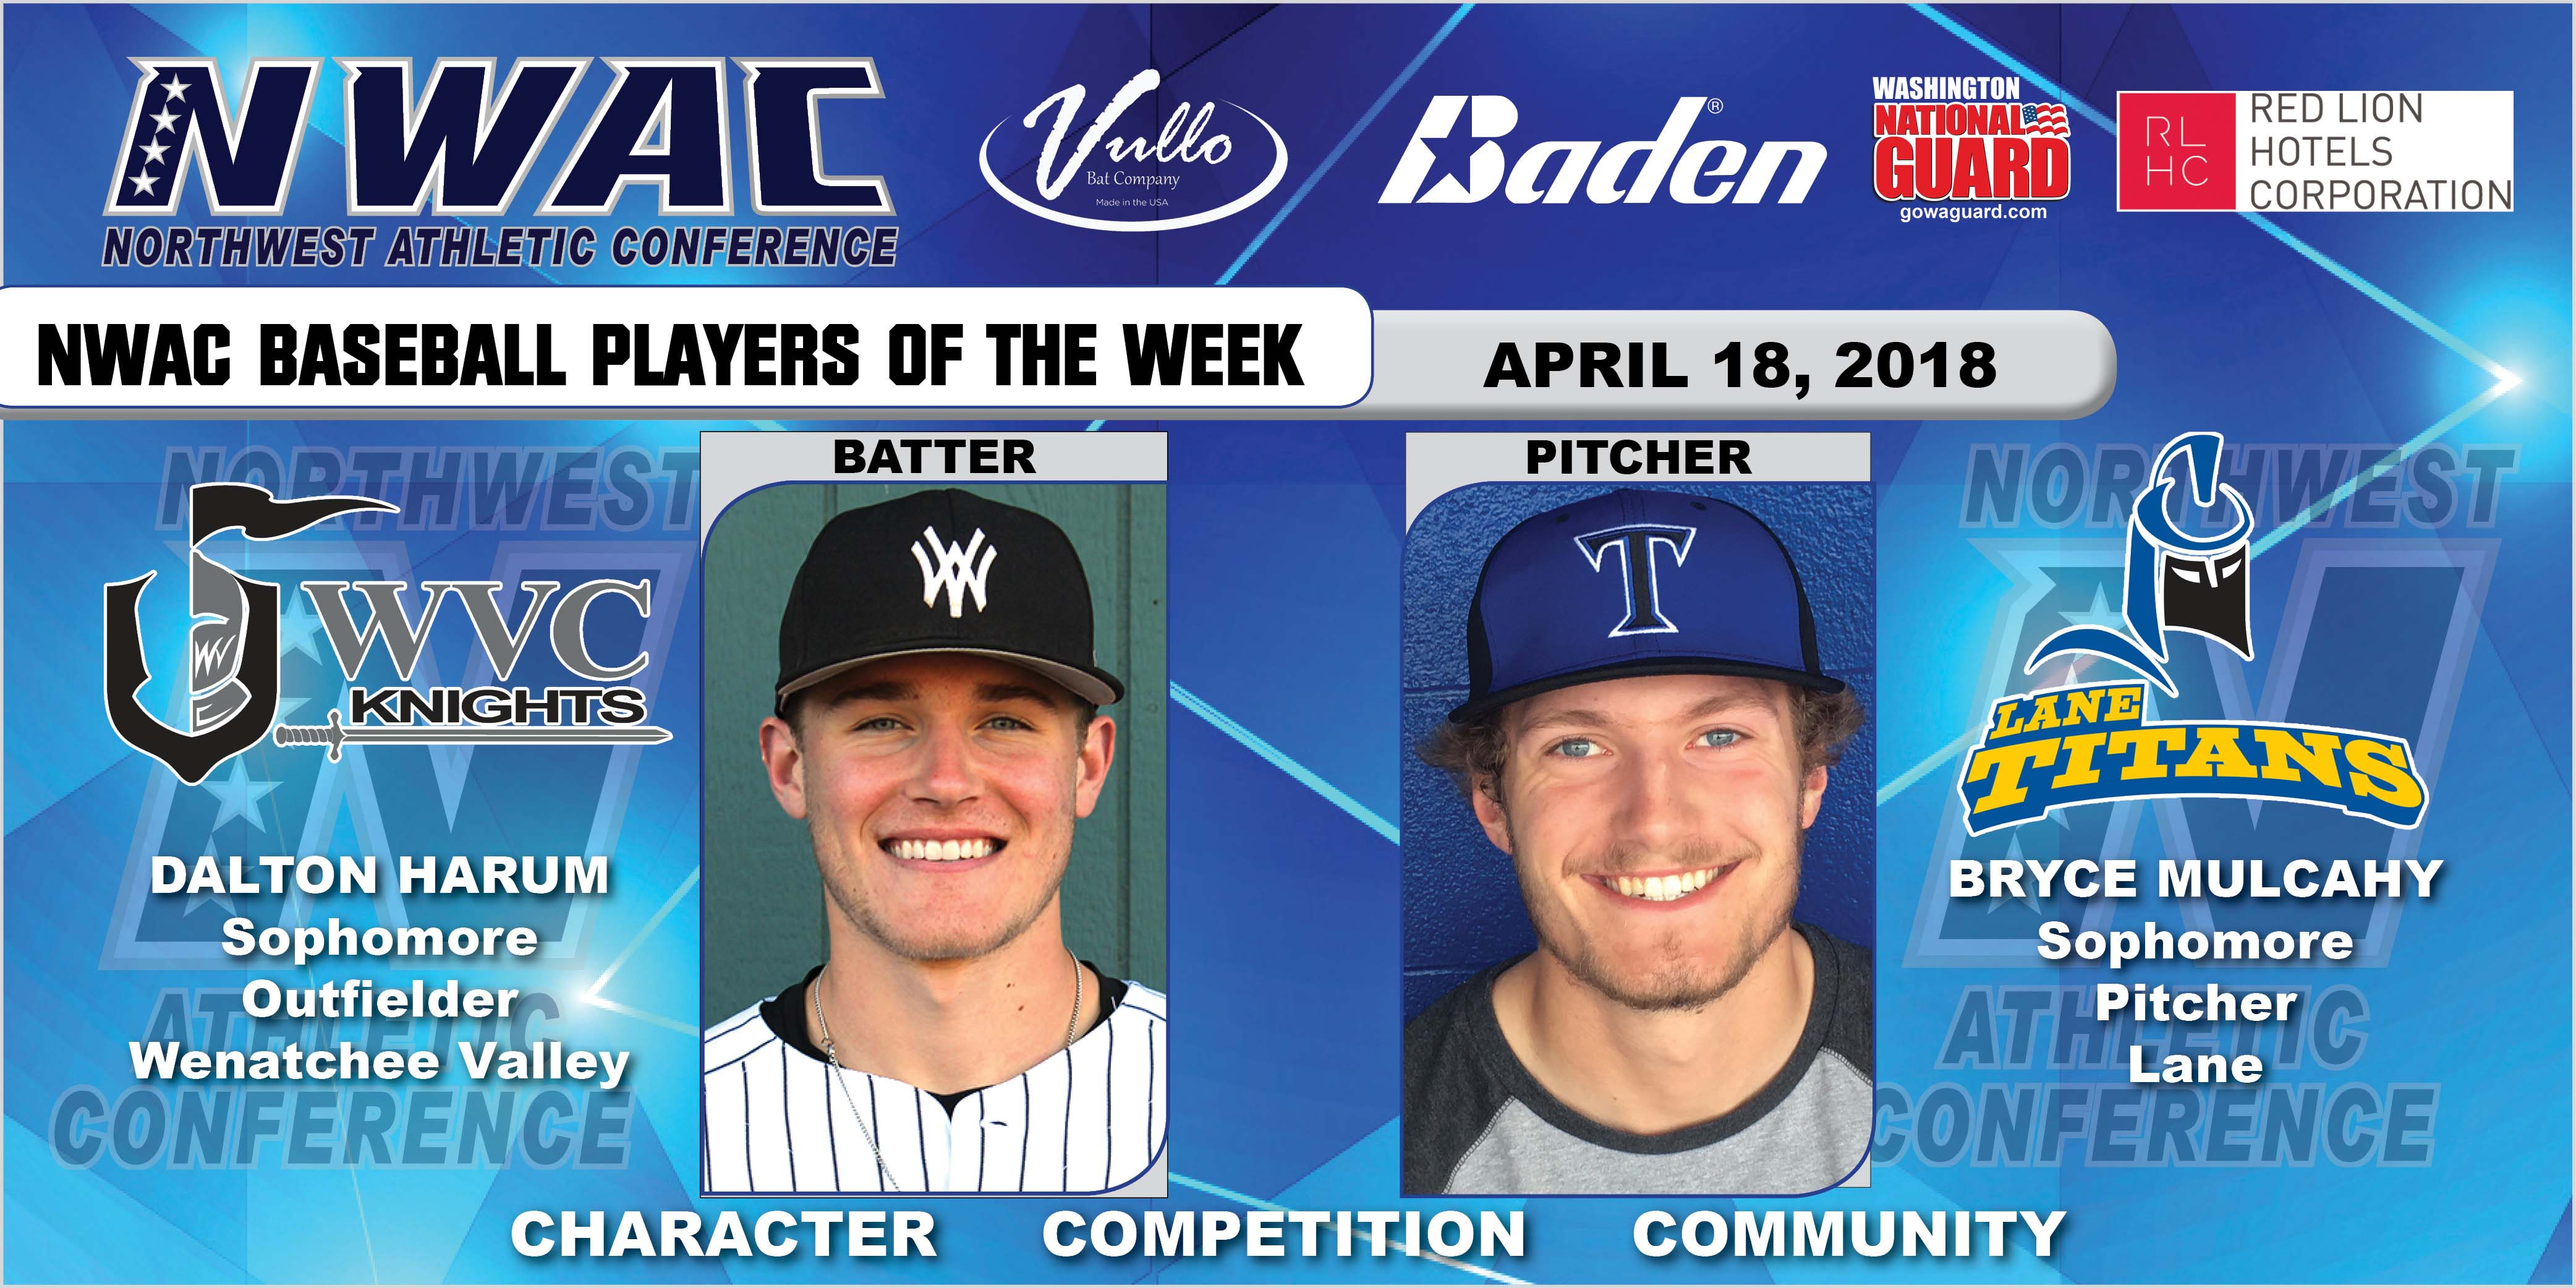 Dalton Harum and Bryce Mulcahy players of the week collage